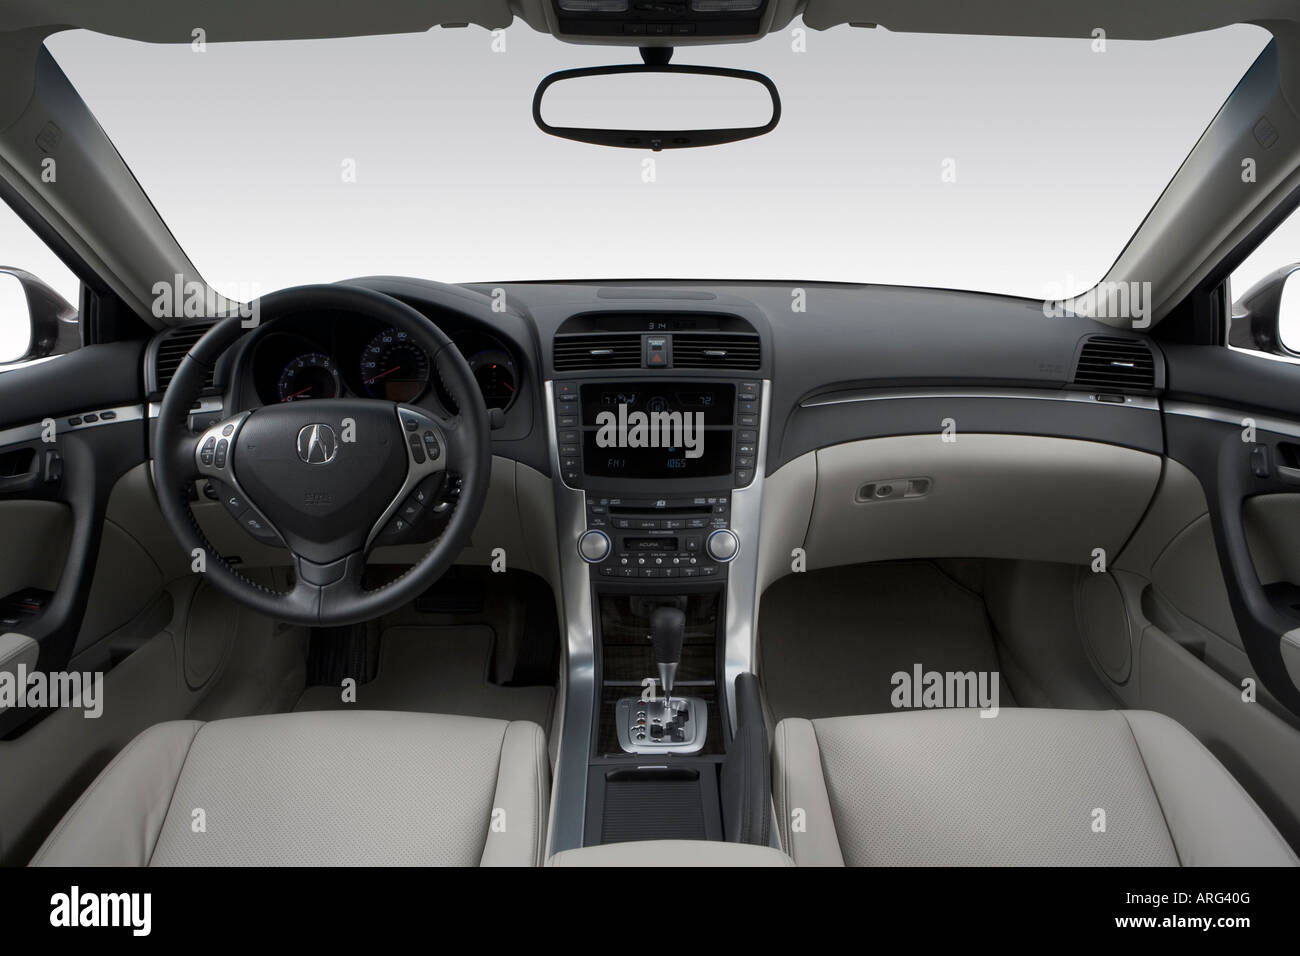 Acura Tl Stock Photos Acura Tl Stock Images Page Alamy - Acura tl dashboard